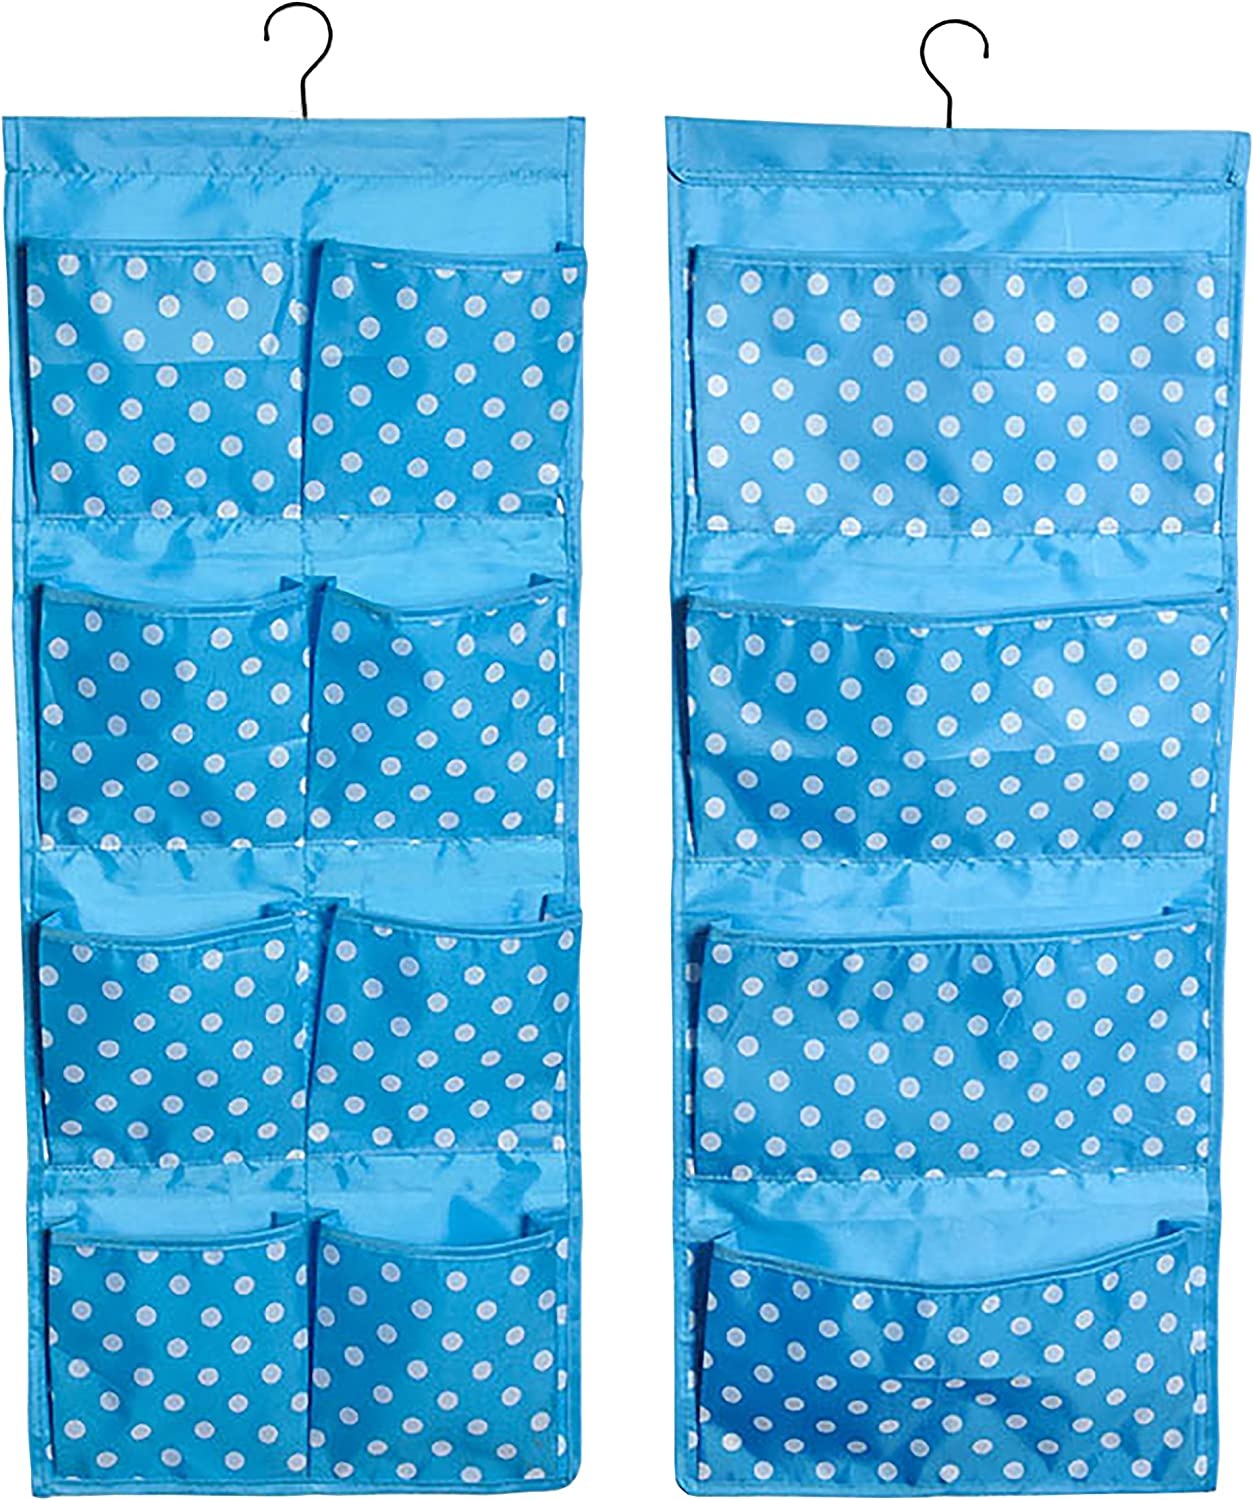 Over the Door Hanging Organizer Double Sided With 4 Large Pockets on One Side and 8 Smaller Pockets on the Other Side - Changing Table or Crib, Kids Bedroom, Nursery, Playroom, Pantry -Blue Poka Dots